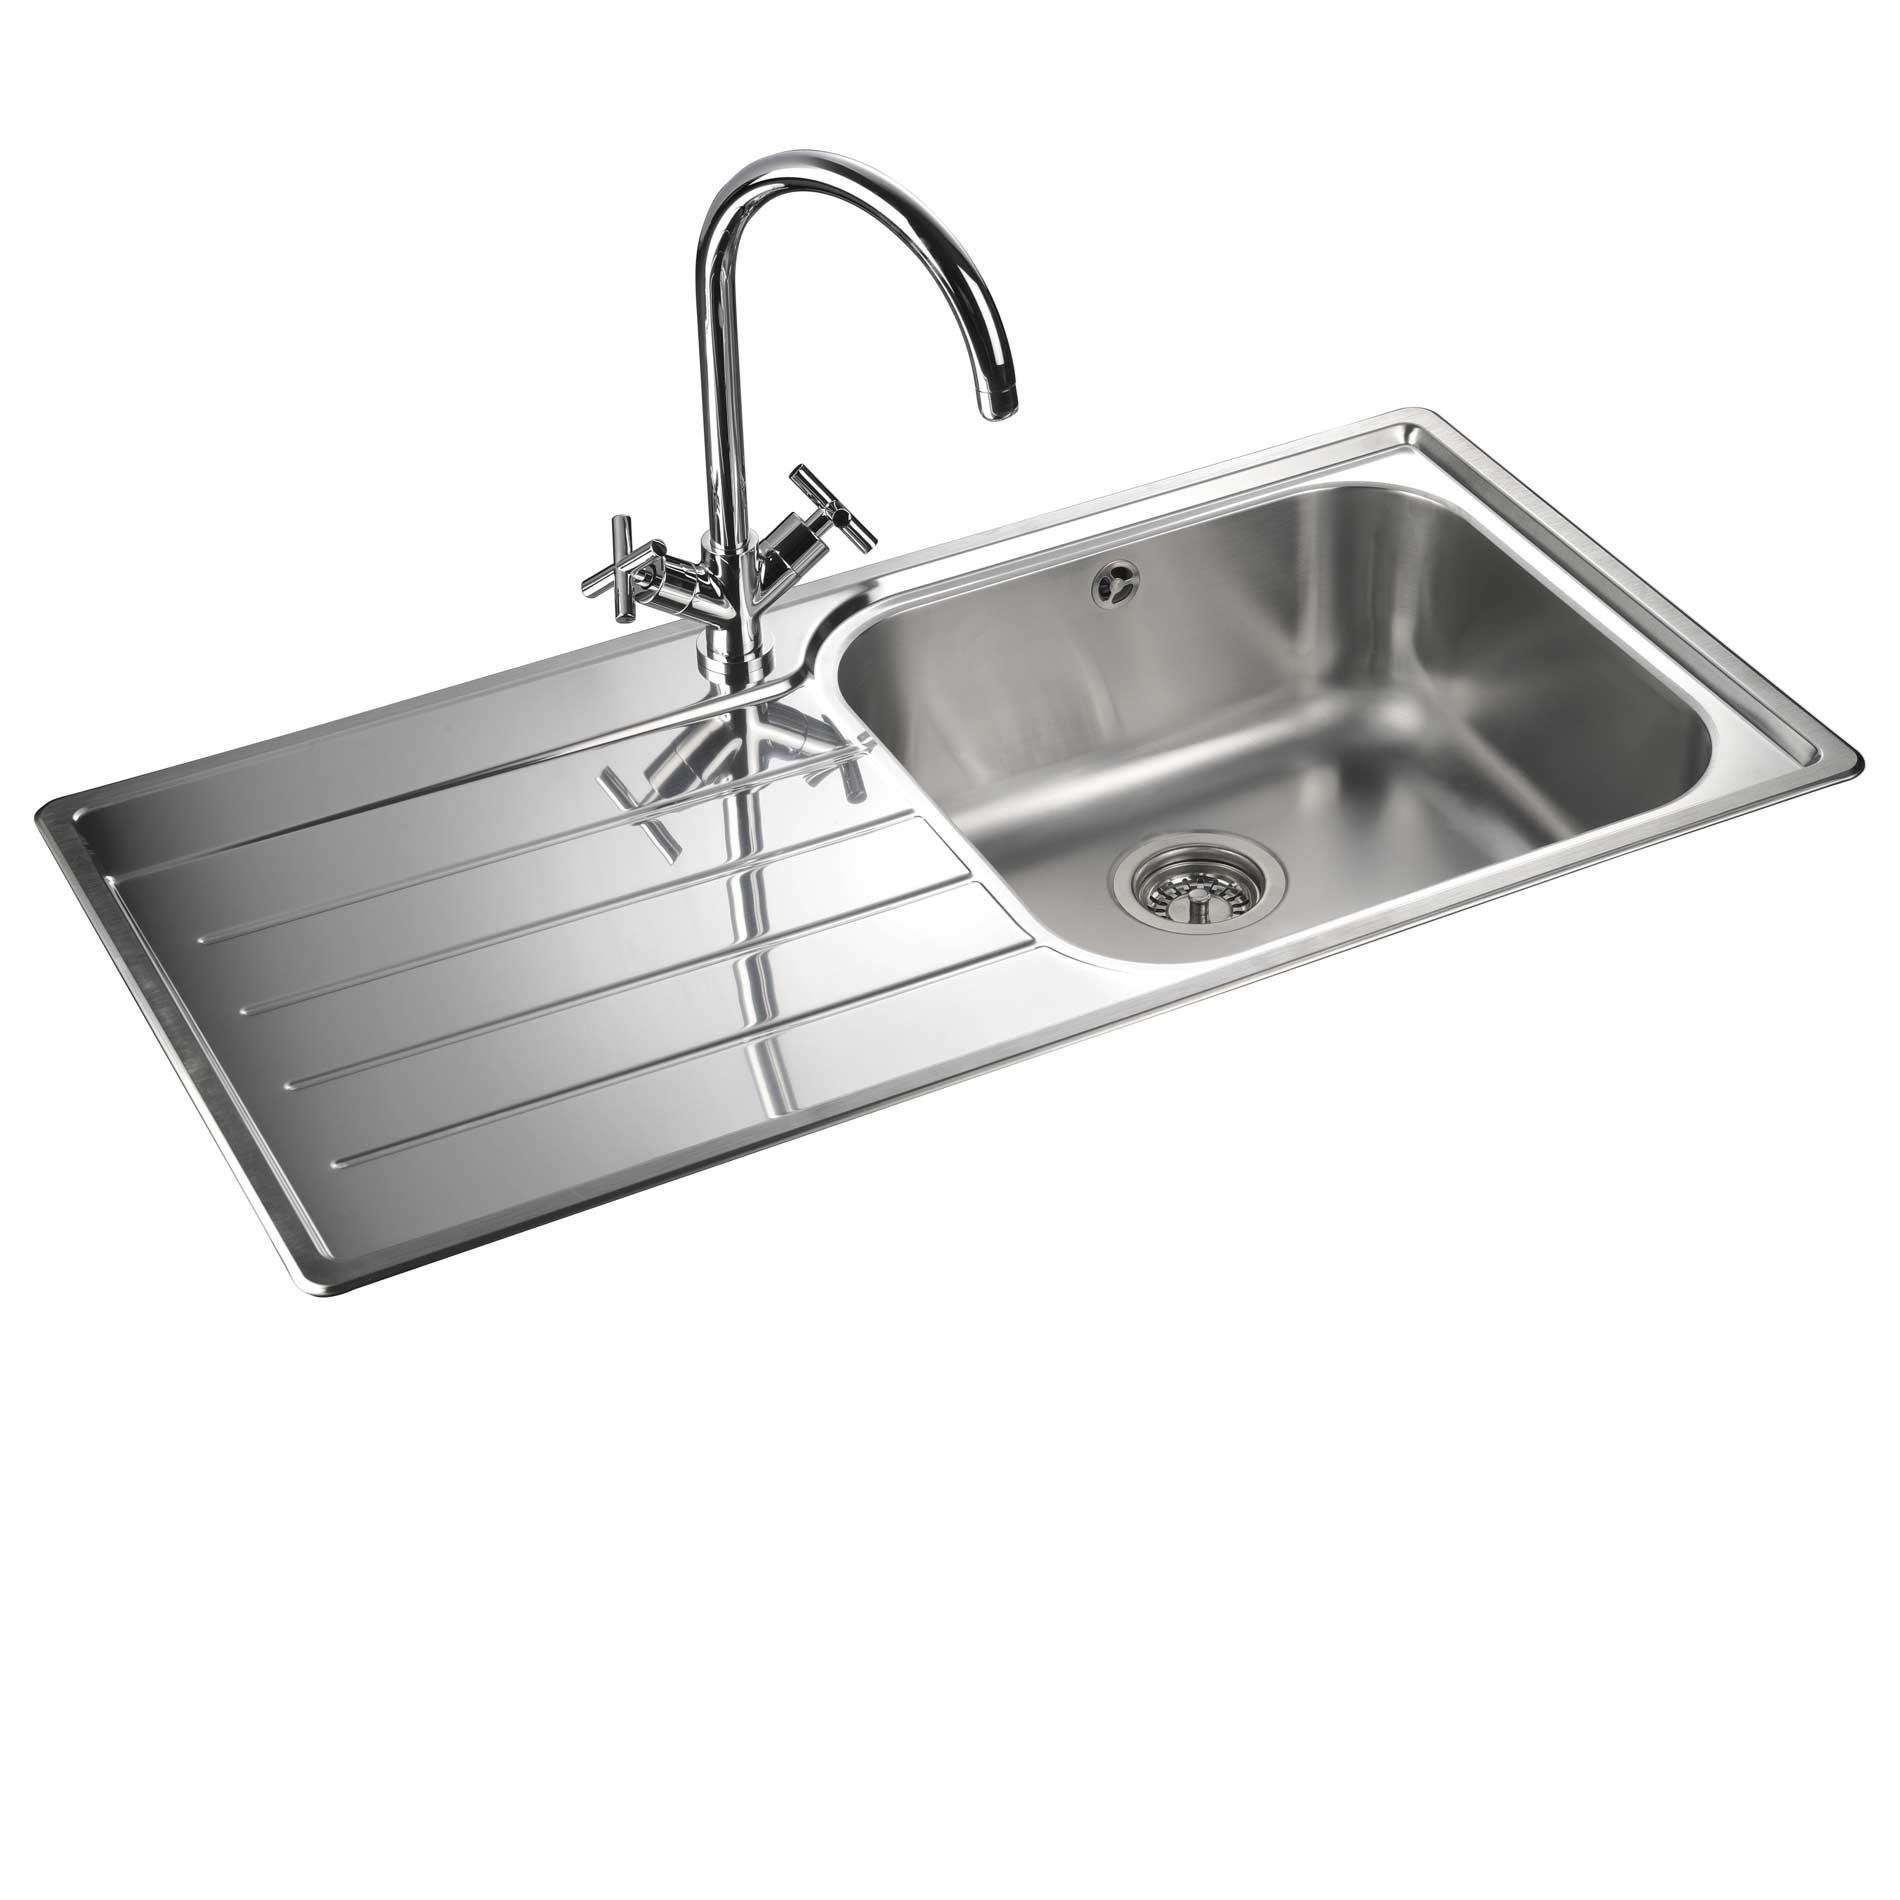 bowl hr steel sink product sinks legend apron kitchen single stainless x